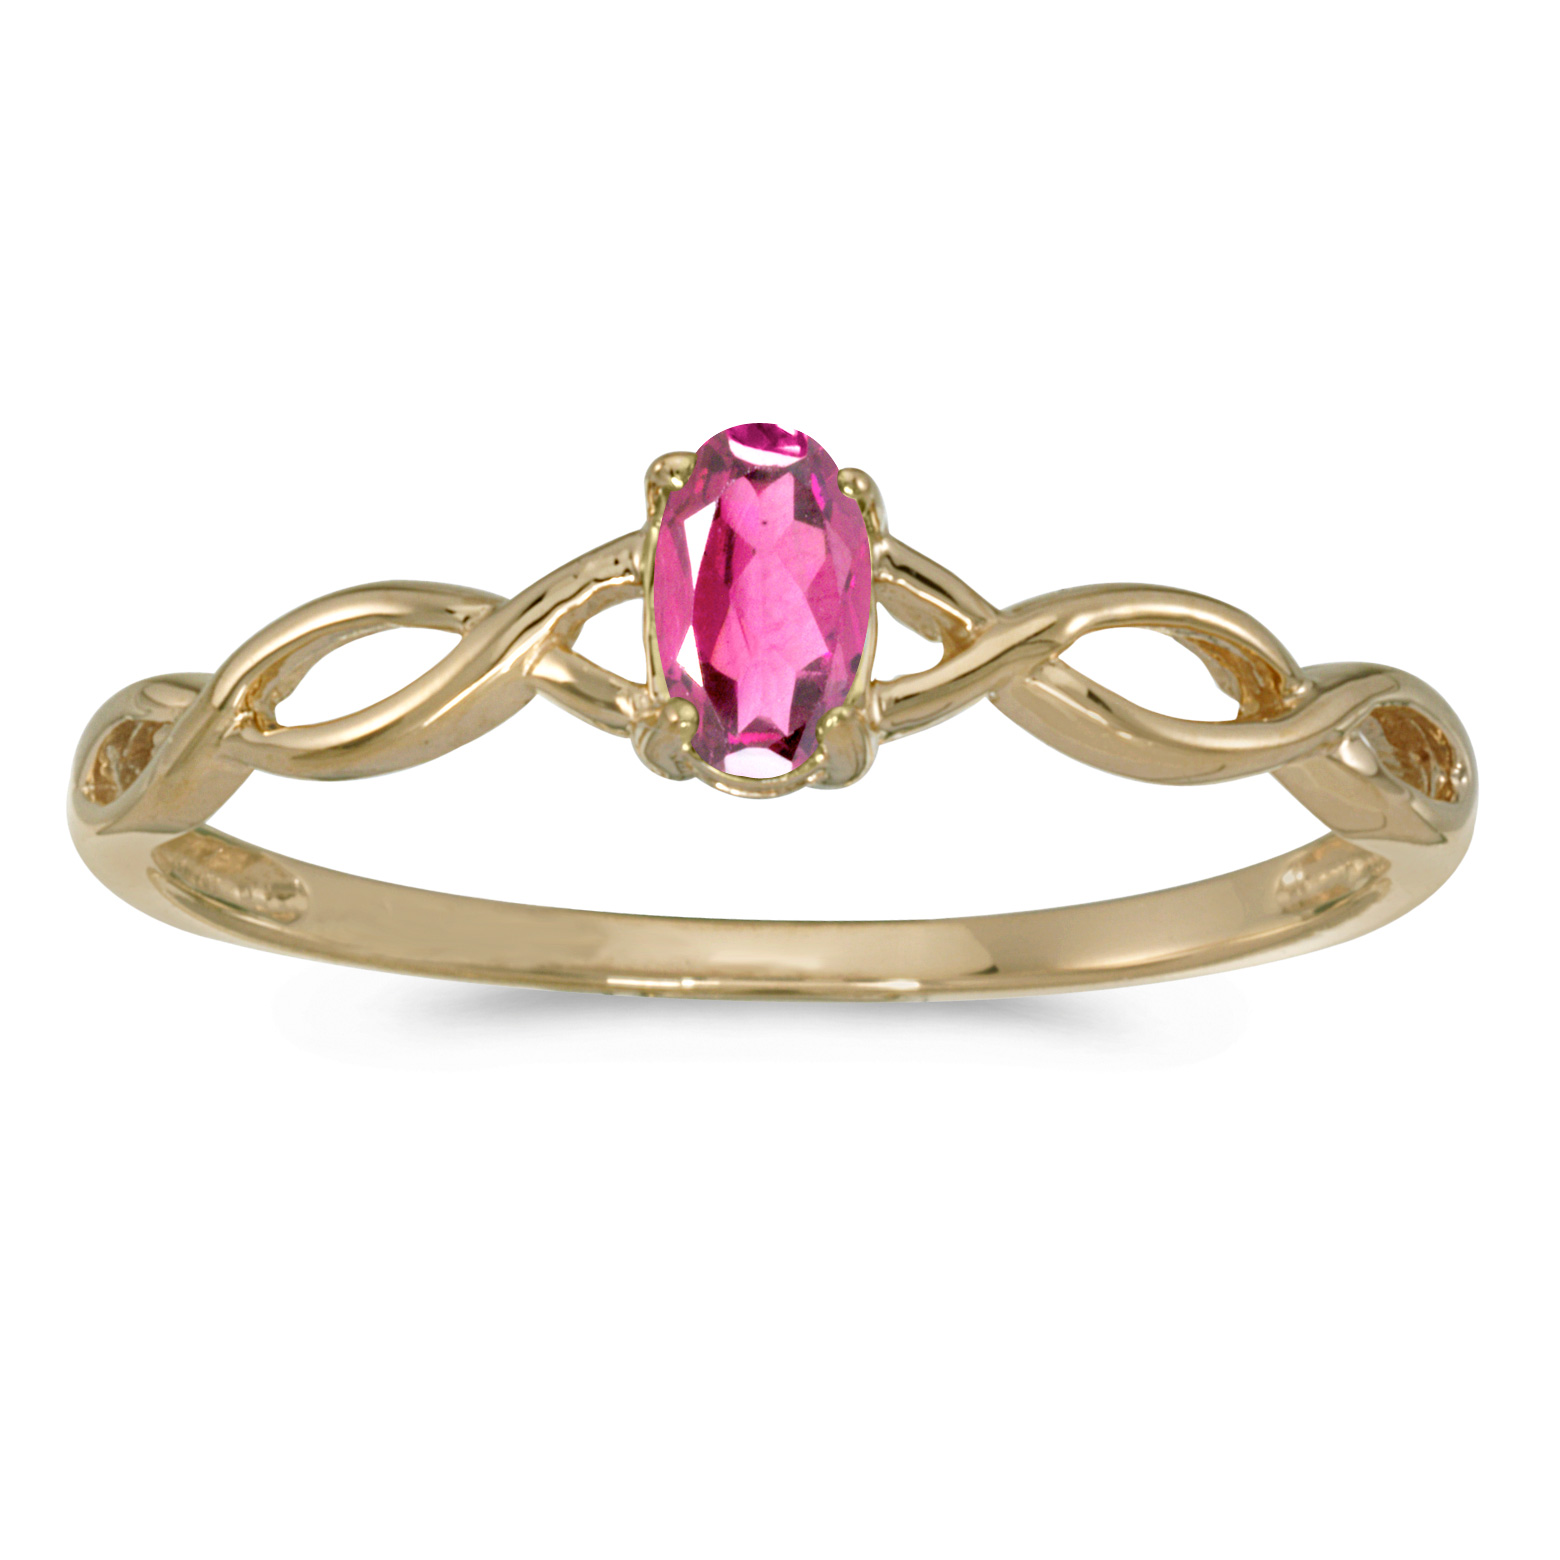 10k Yellow Gold Oval Pink Topaz Ring by